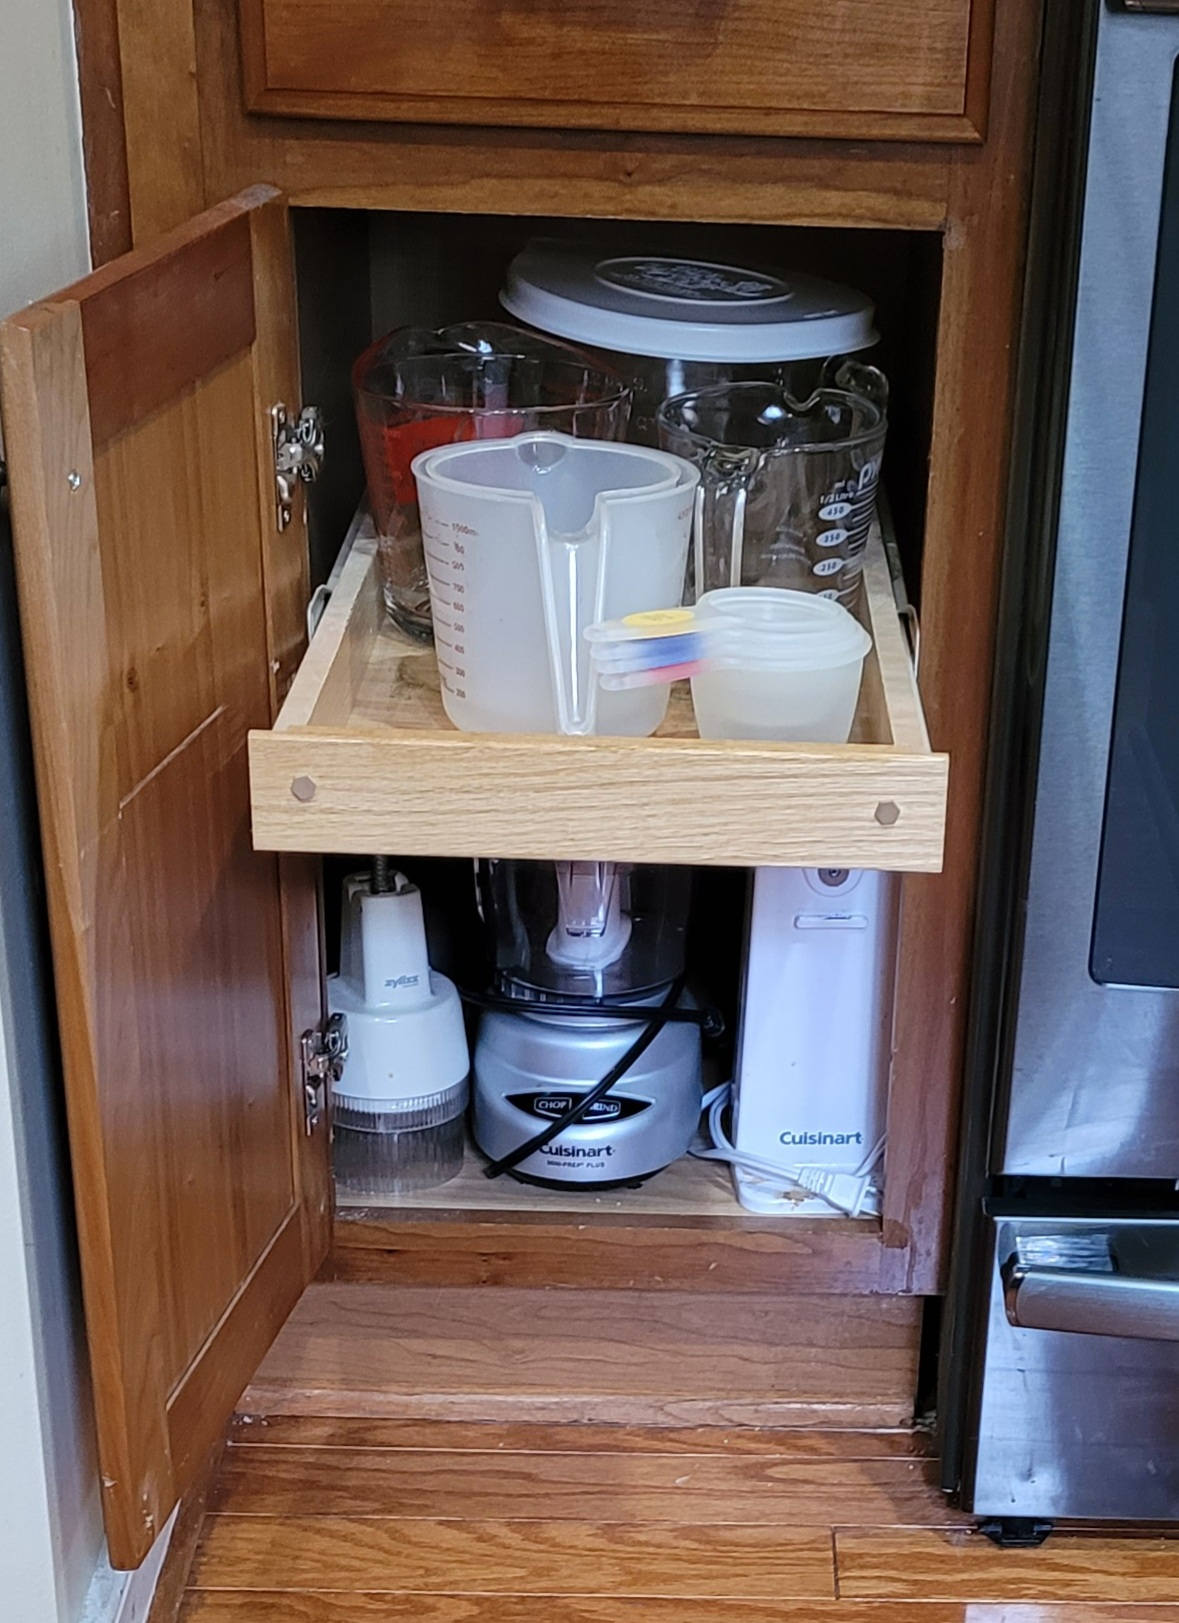 Cabinet pull out shelf with measuring cups.